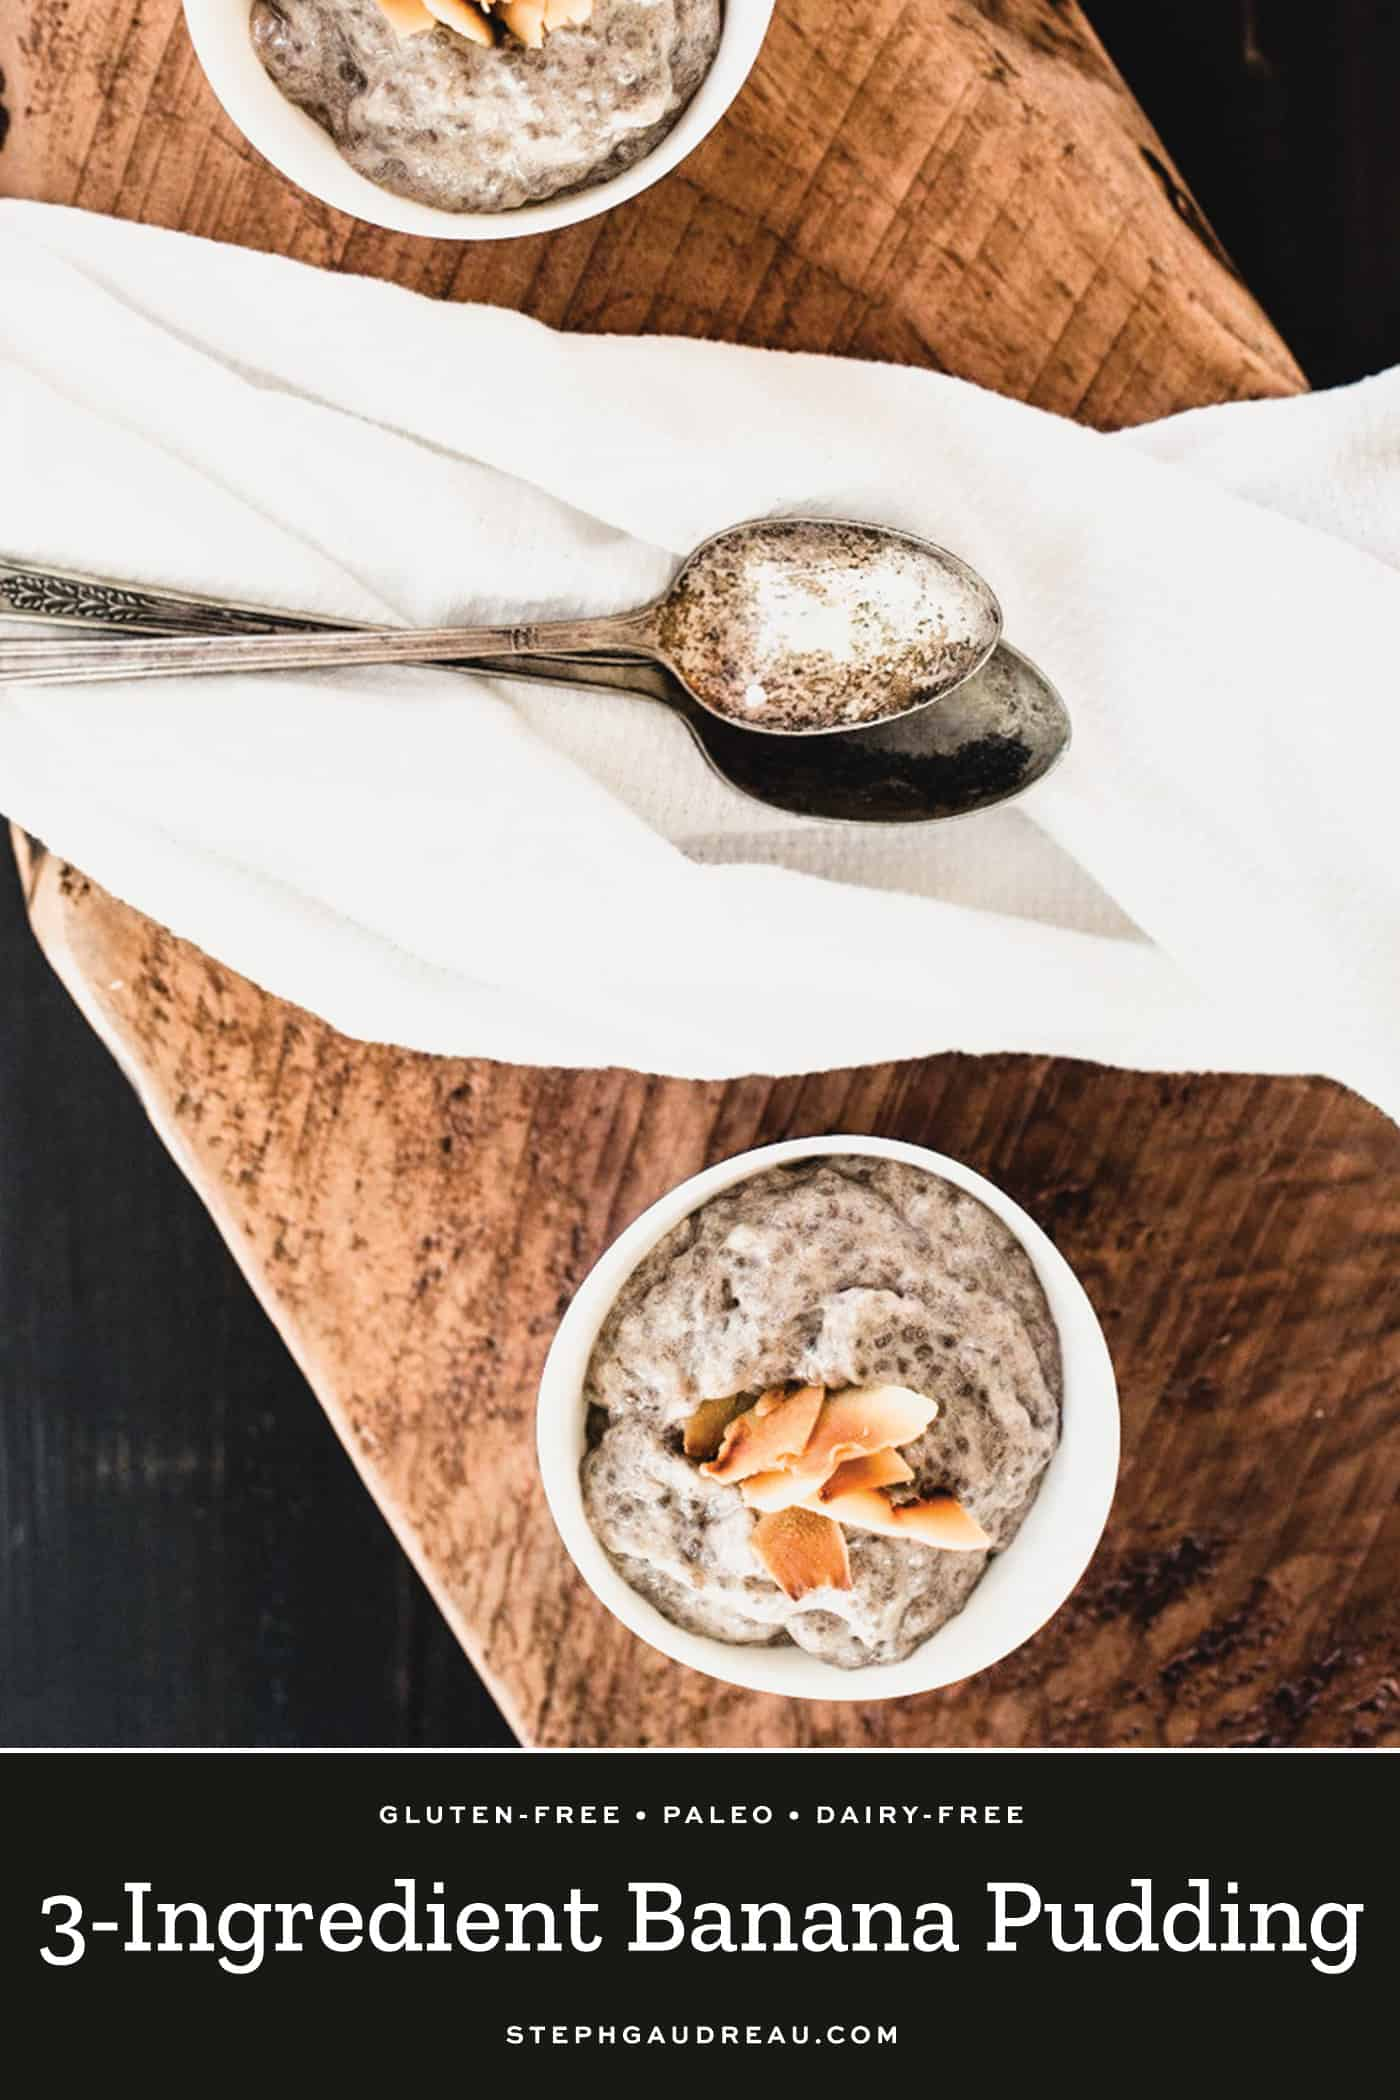 chia pudding made with banana and topped with coconut flakes in small white bowl